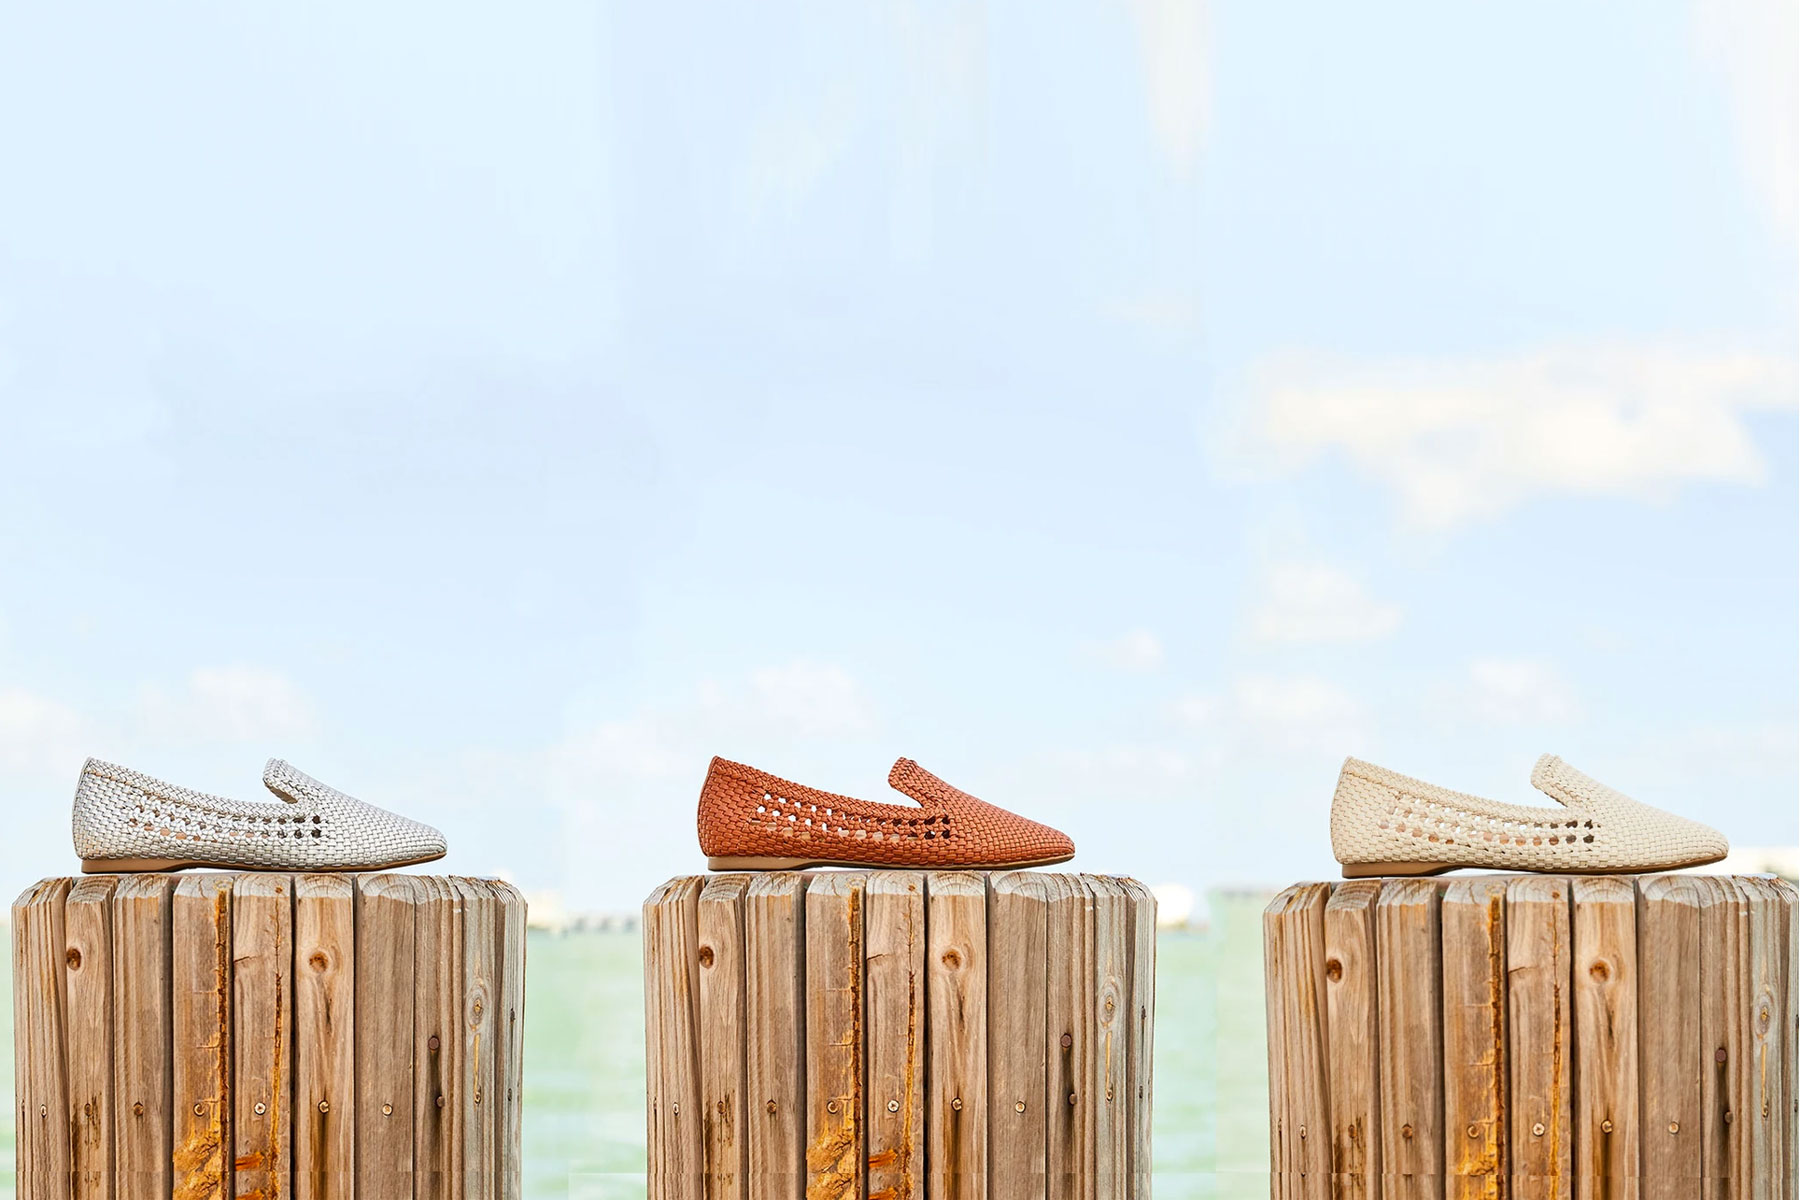 Woven slip on flats by the ocean